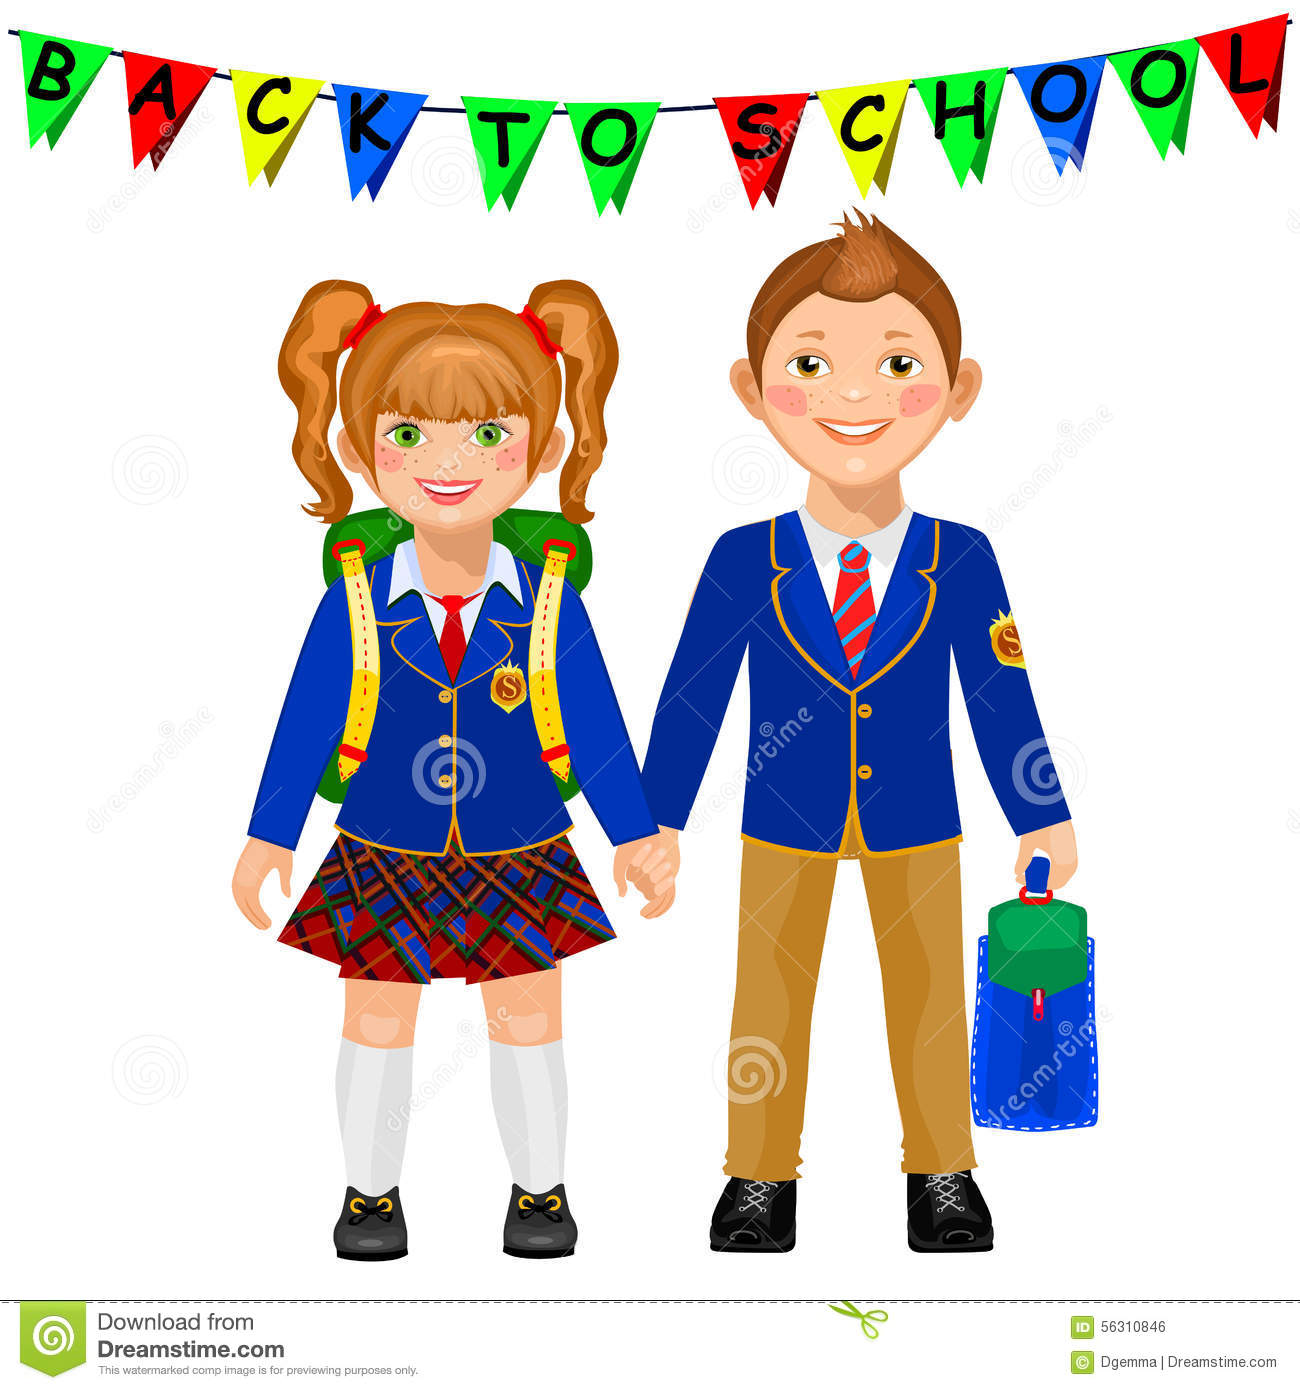 75f465e49da Boy and girl in a school uniform holding hand. royalty free illustration